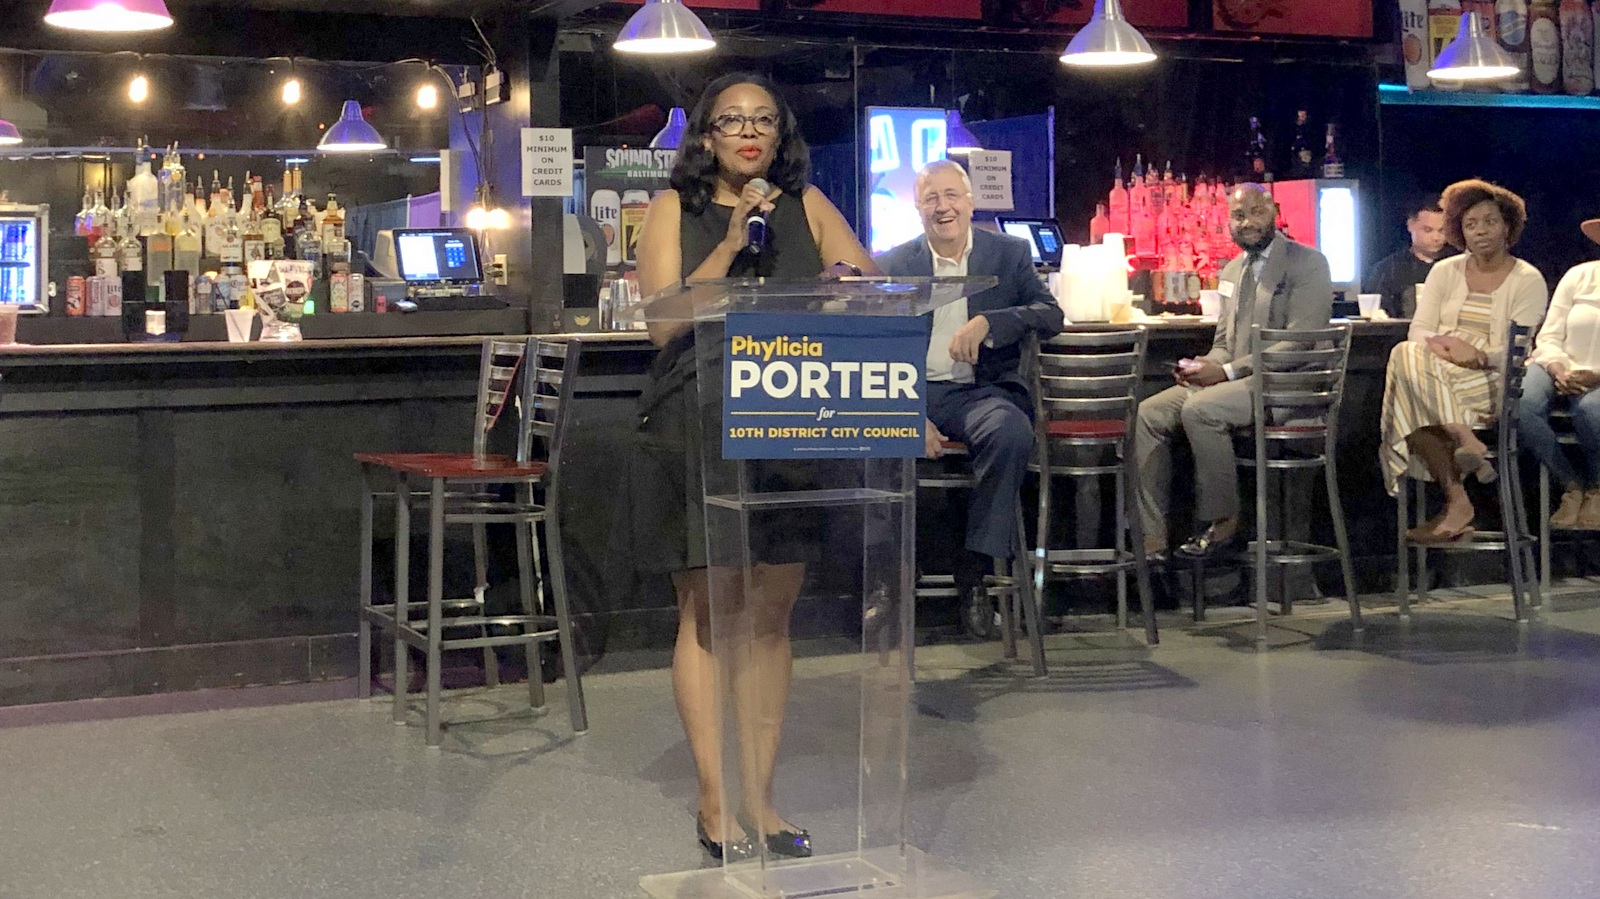 Phylicia Porter at a campaign event, with retiring incumbent Councilman Ed Reisinger behind her. (Ian Round)